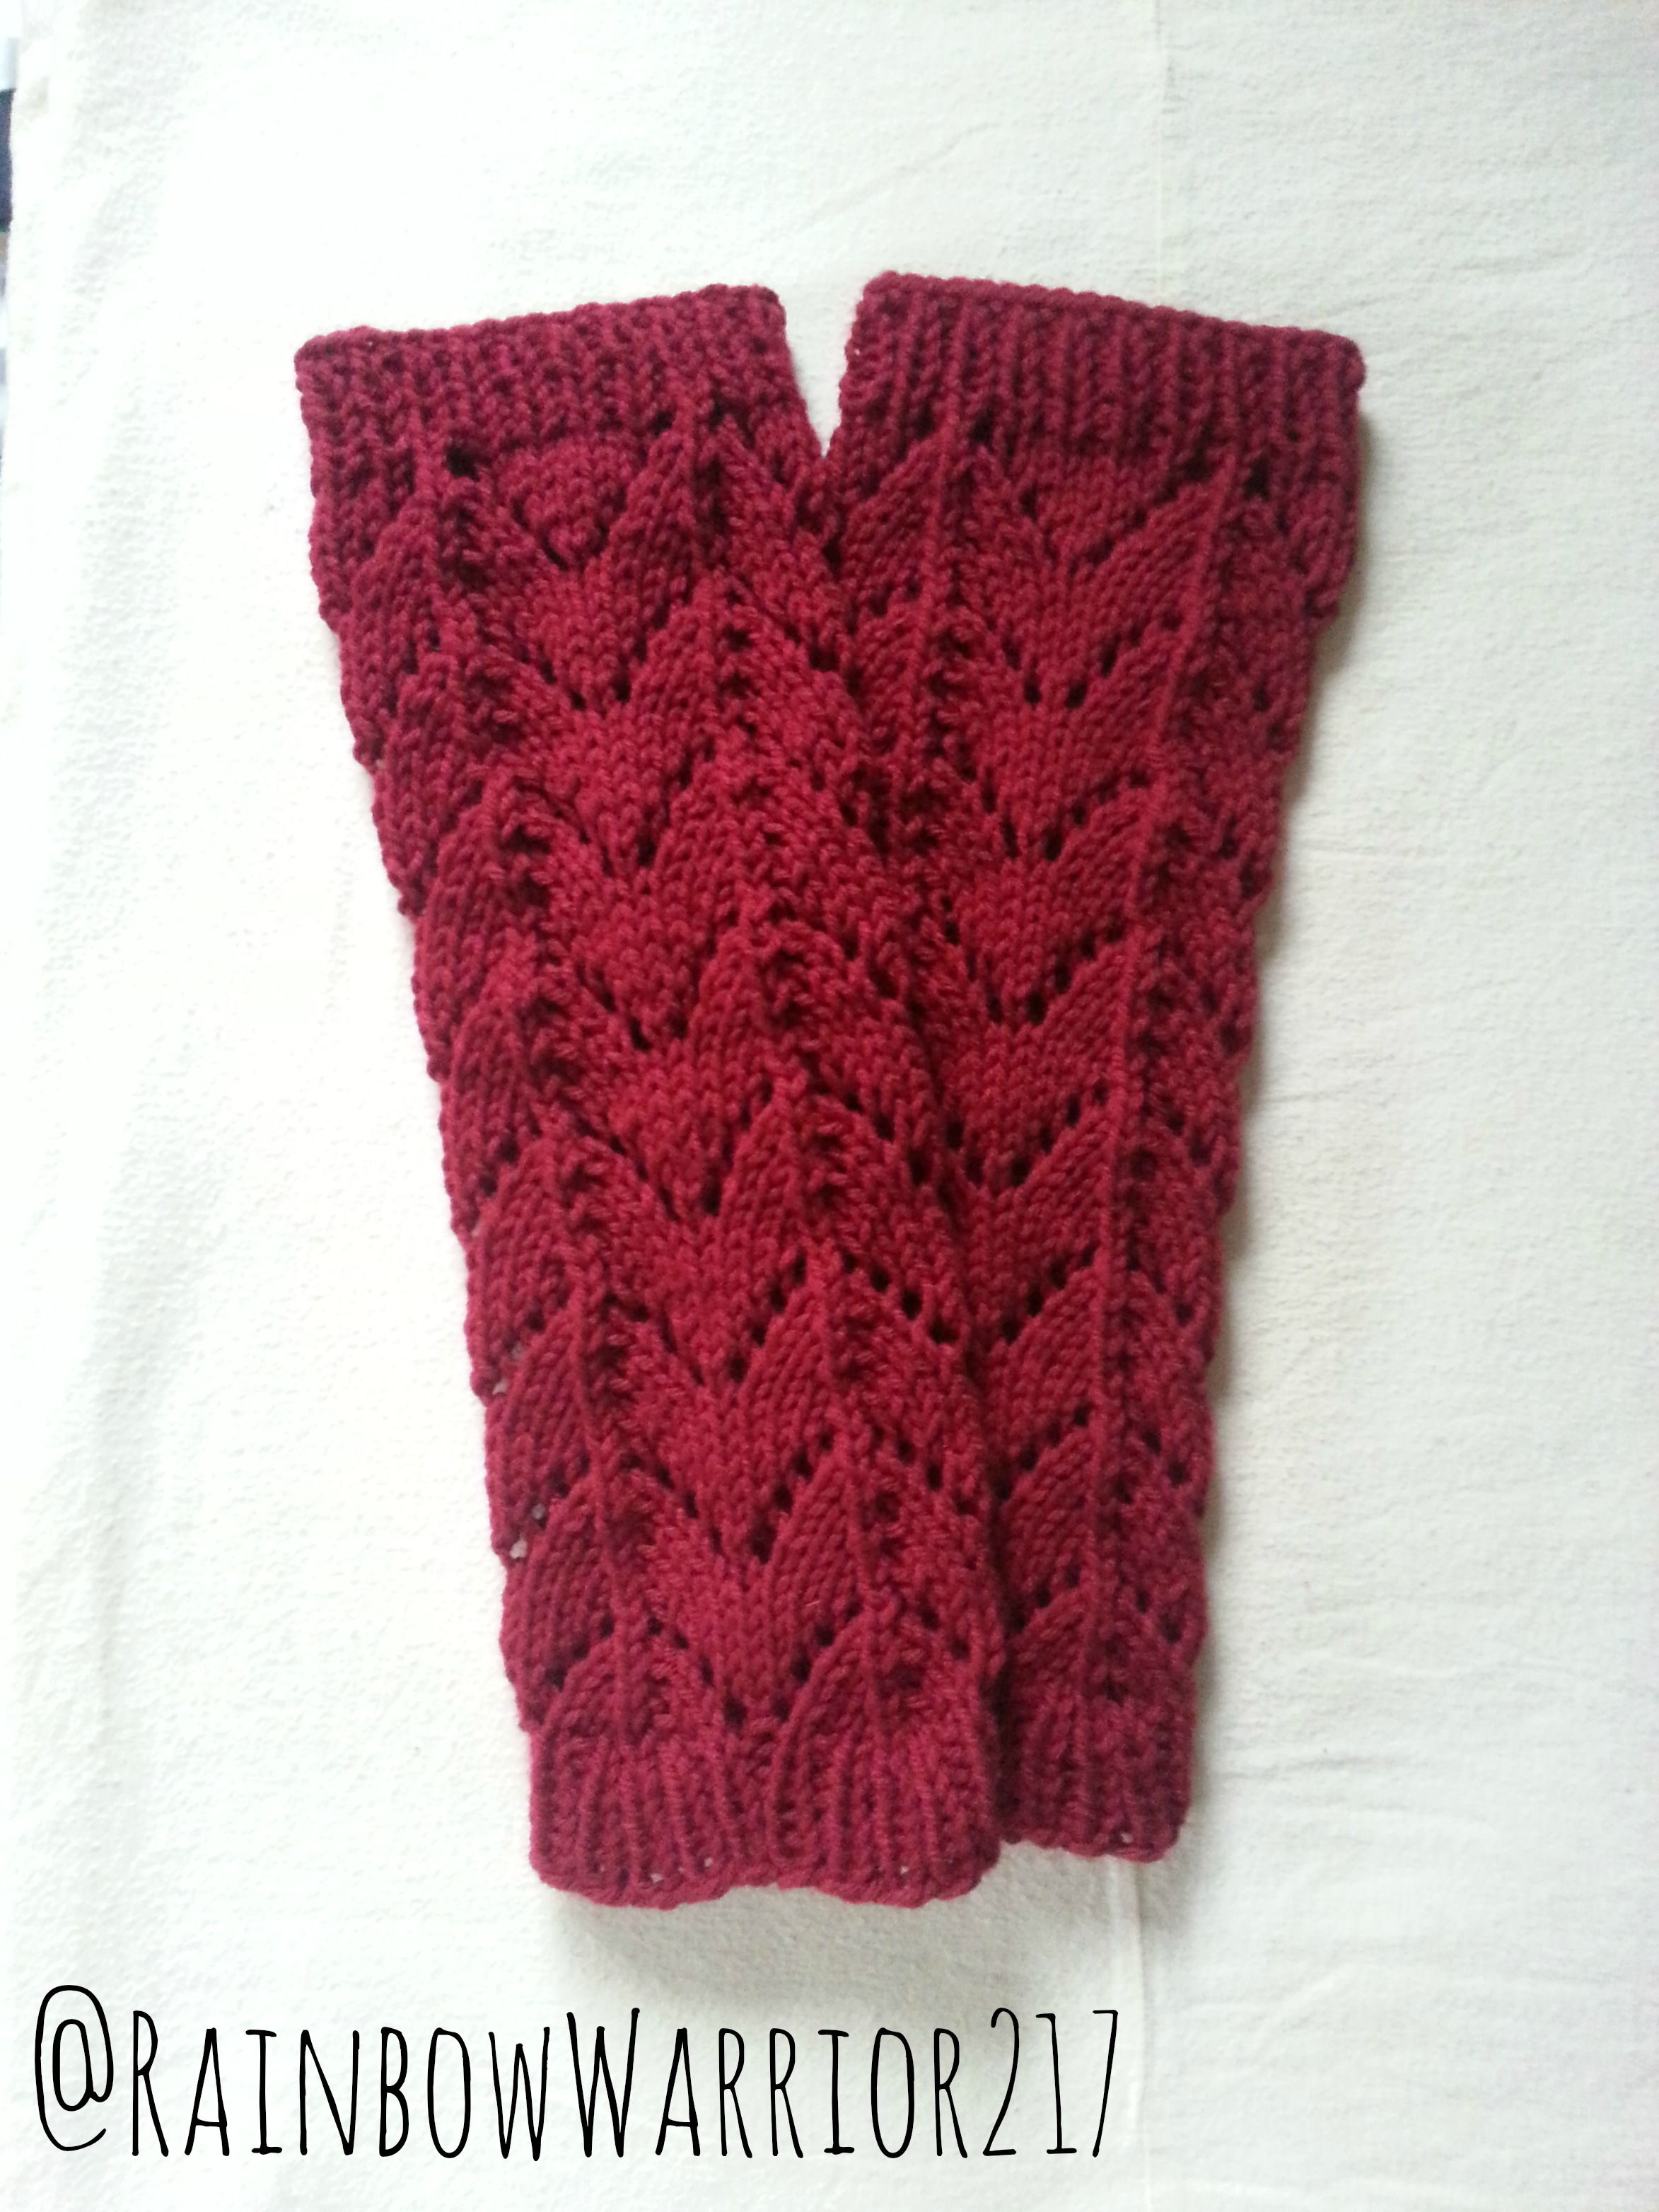 Knitting Leg Warmers Pattern : Lace Leg Warmers Pattern Knit Tutorial   Rainbow Warrior